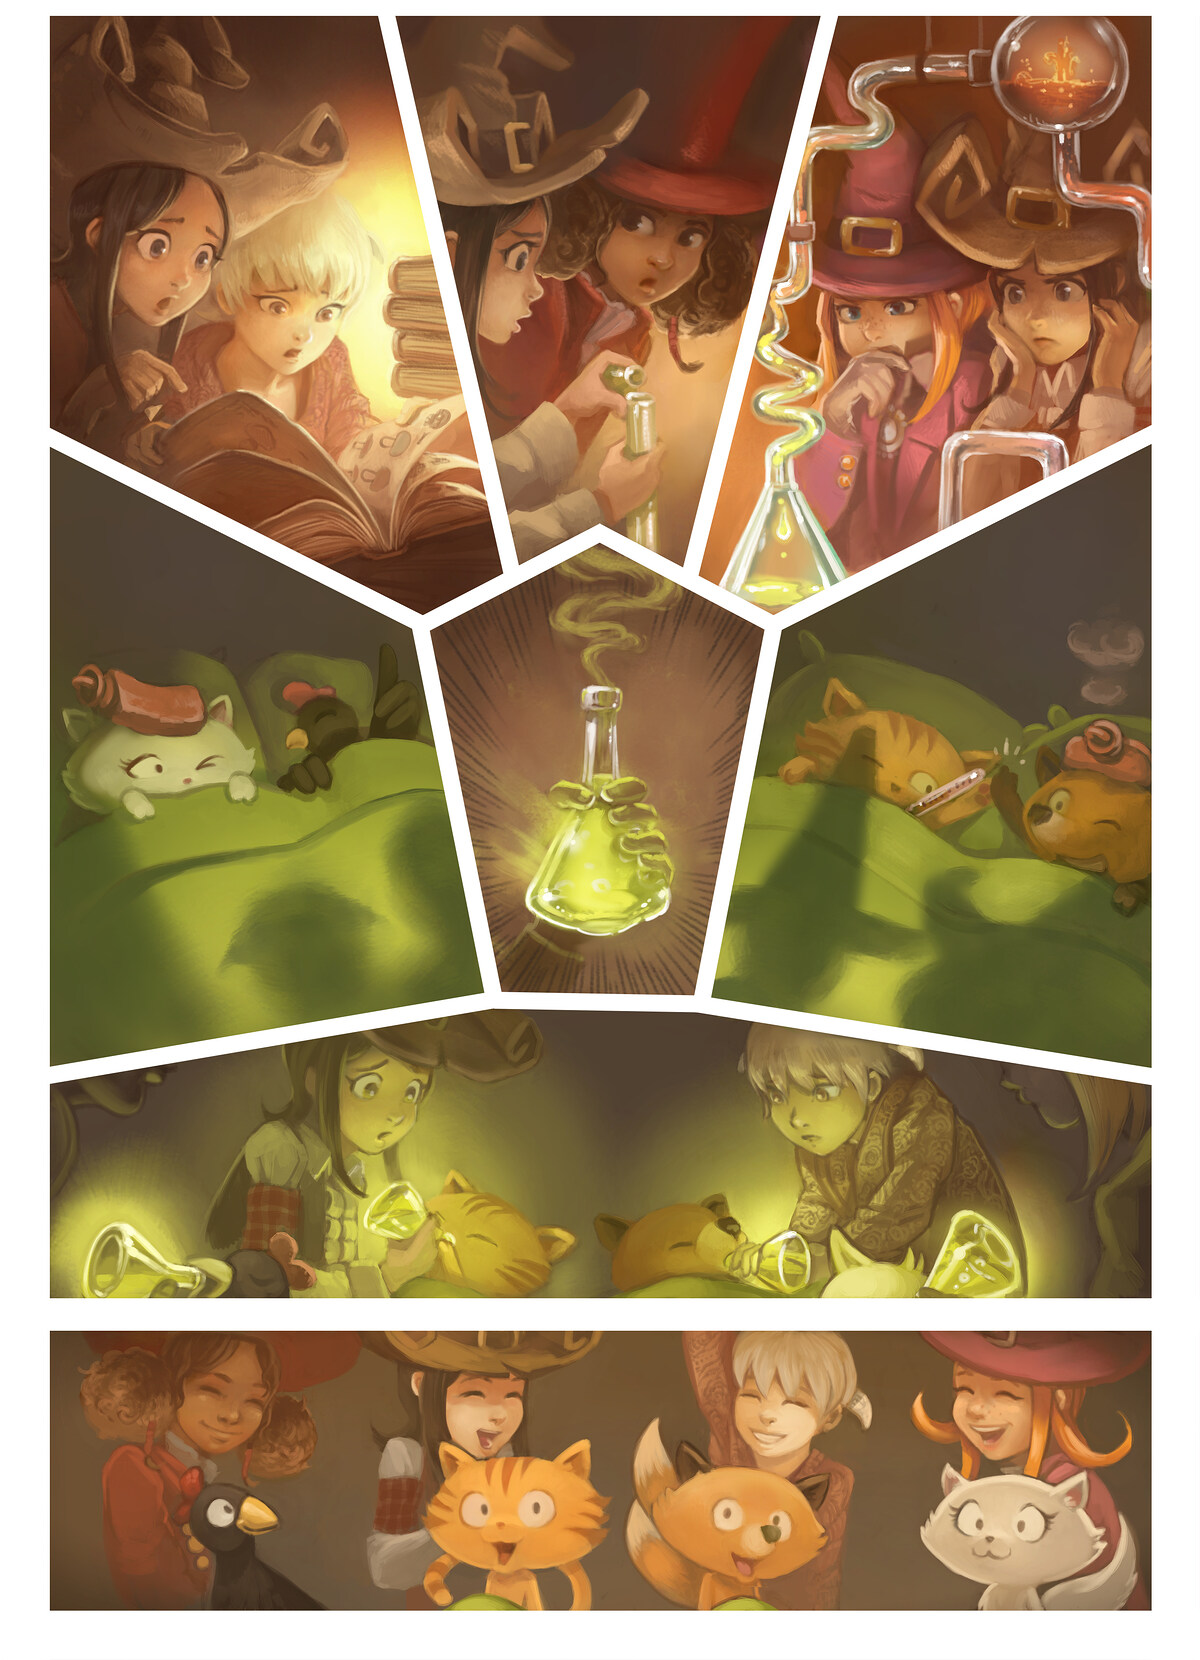 A webcomic page of Pepper&Carrot, 漫画全集 9 [cn], 页面 6